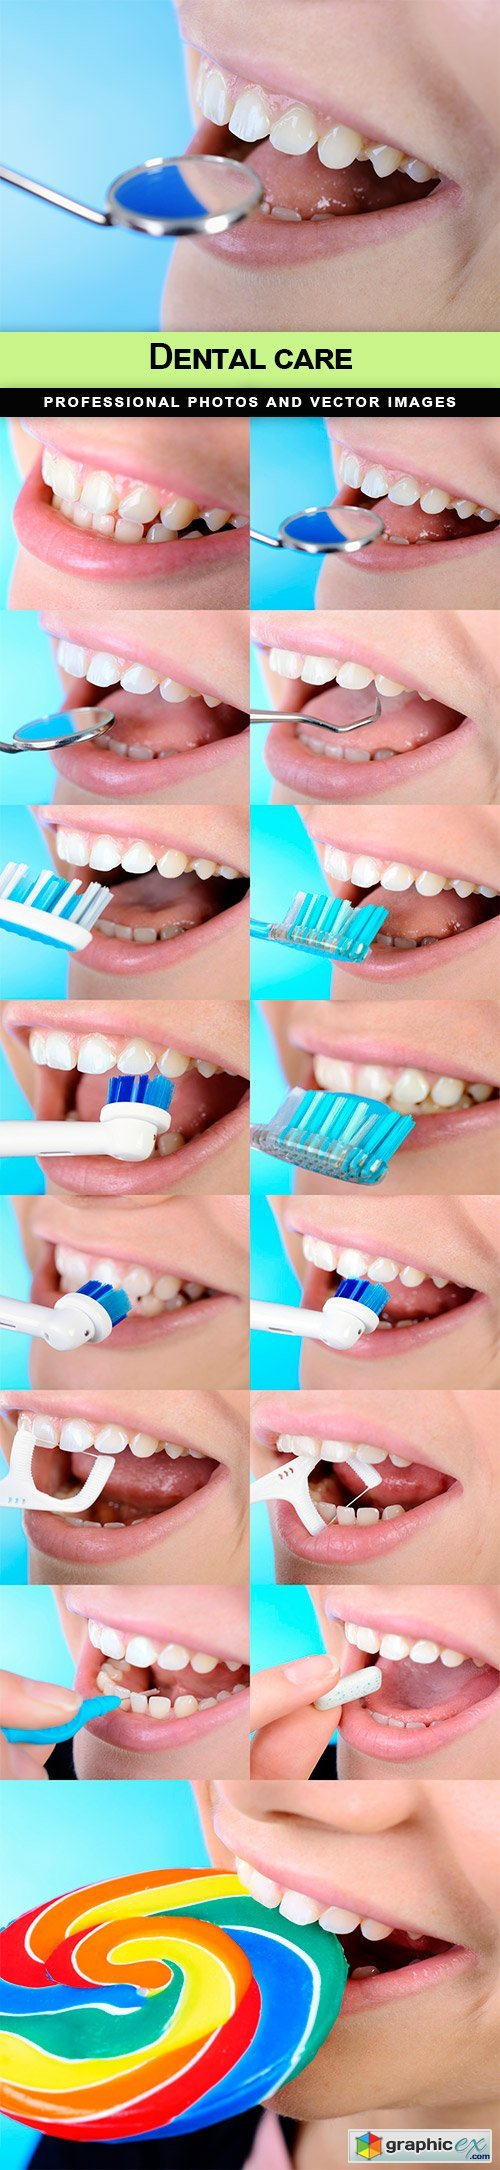 Dental care - 15 UHQ JPEG